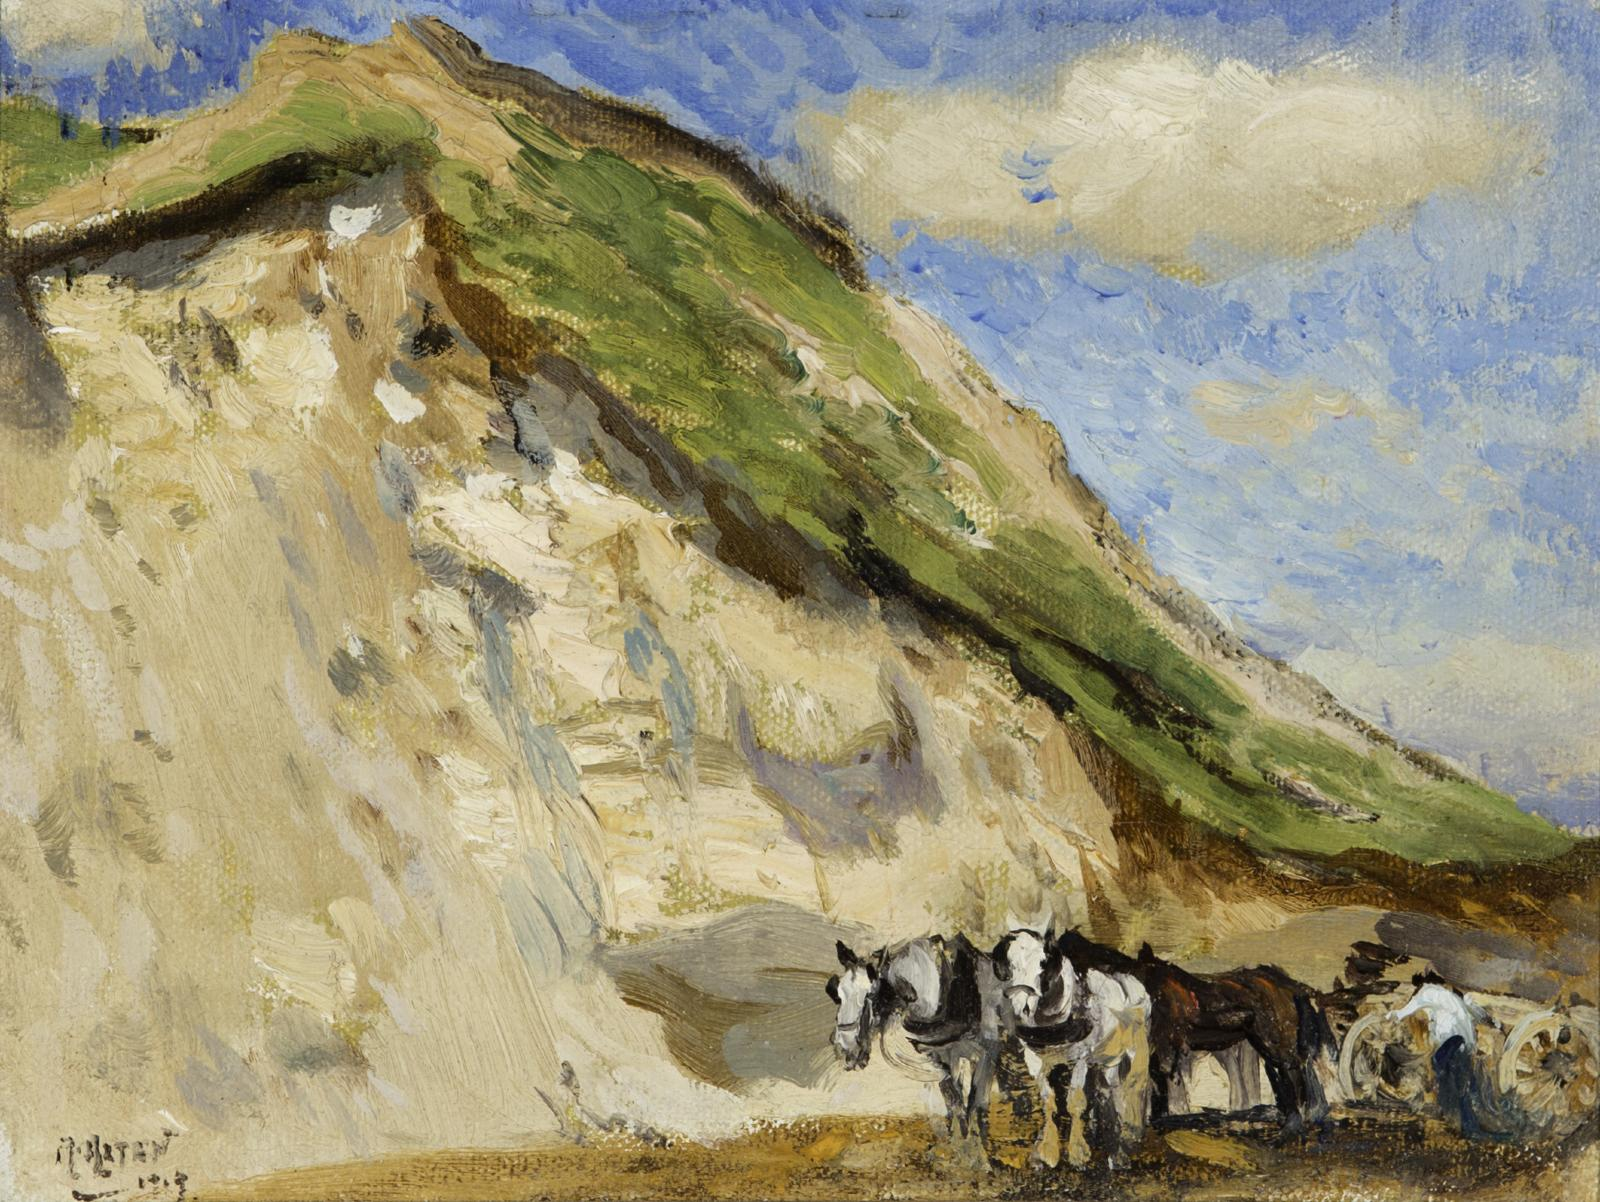 Horses near a large sand dune with green grass on top.